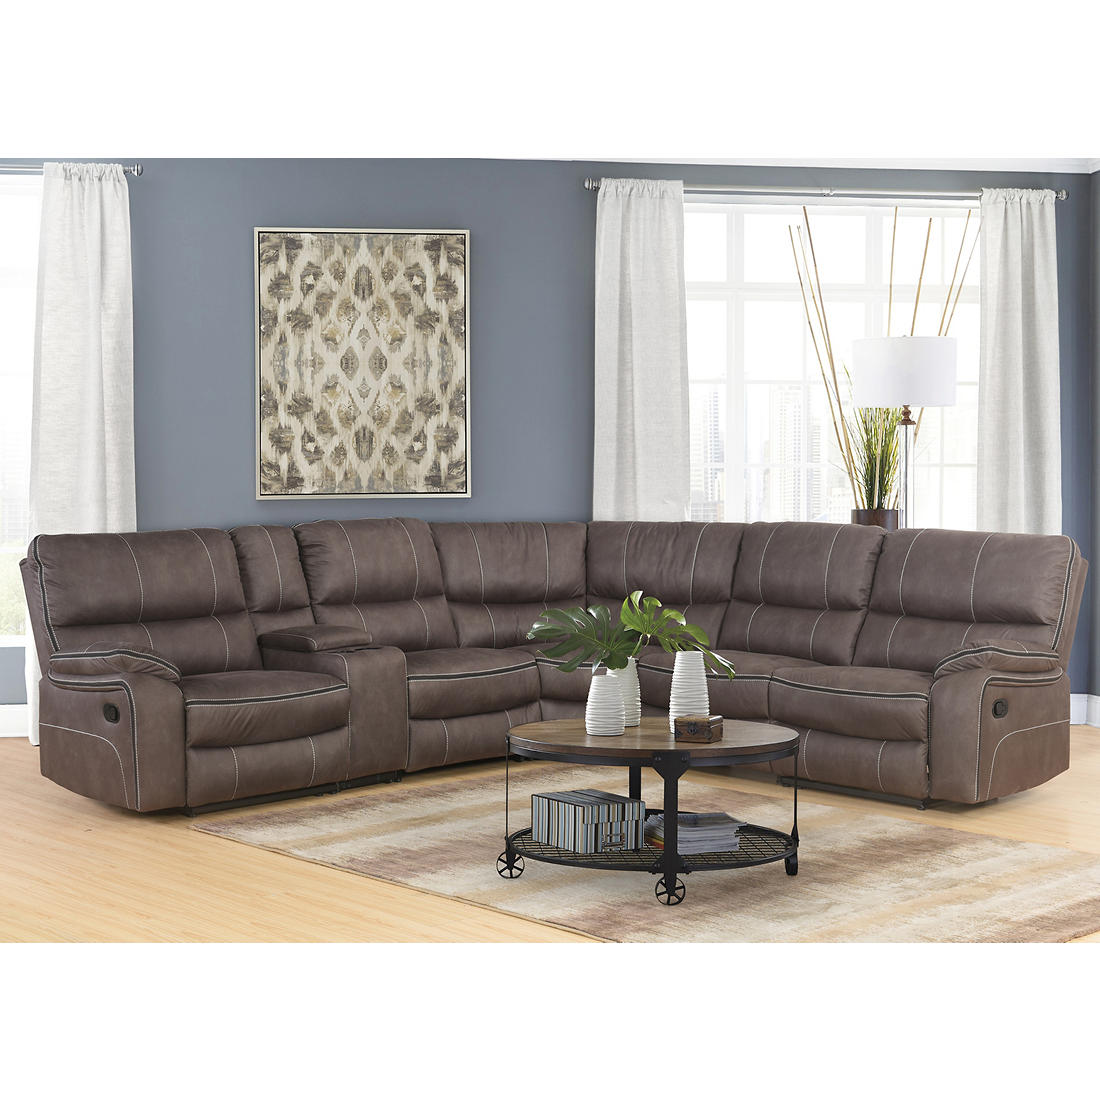 Superieur Abbyson Living Dayton 6 Pc. Fabric Reclining Sectional   Gray